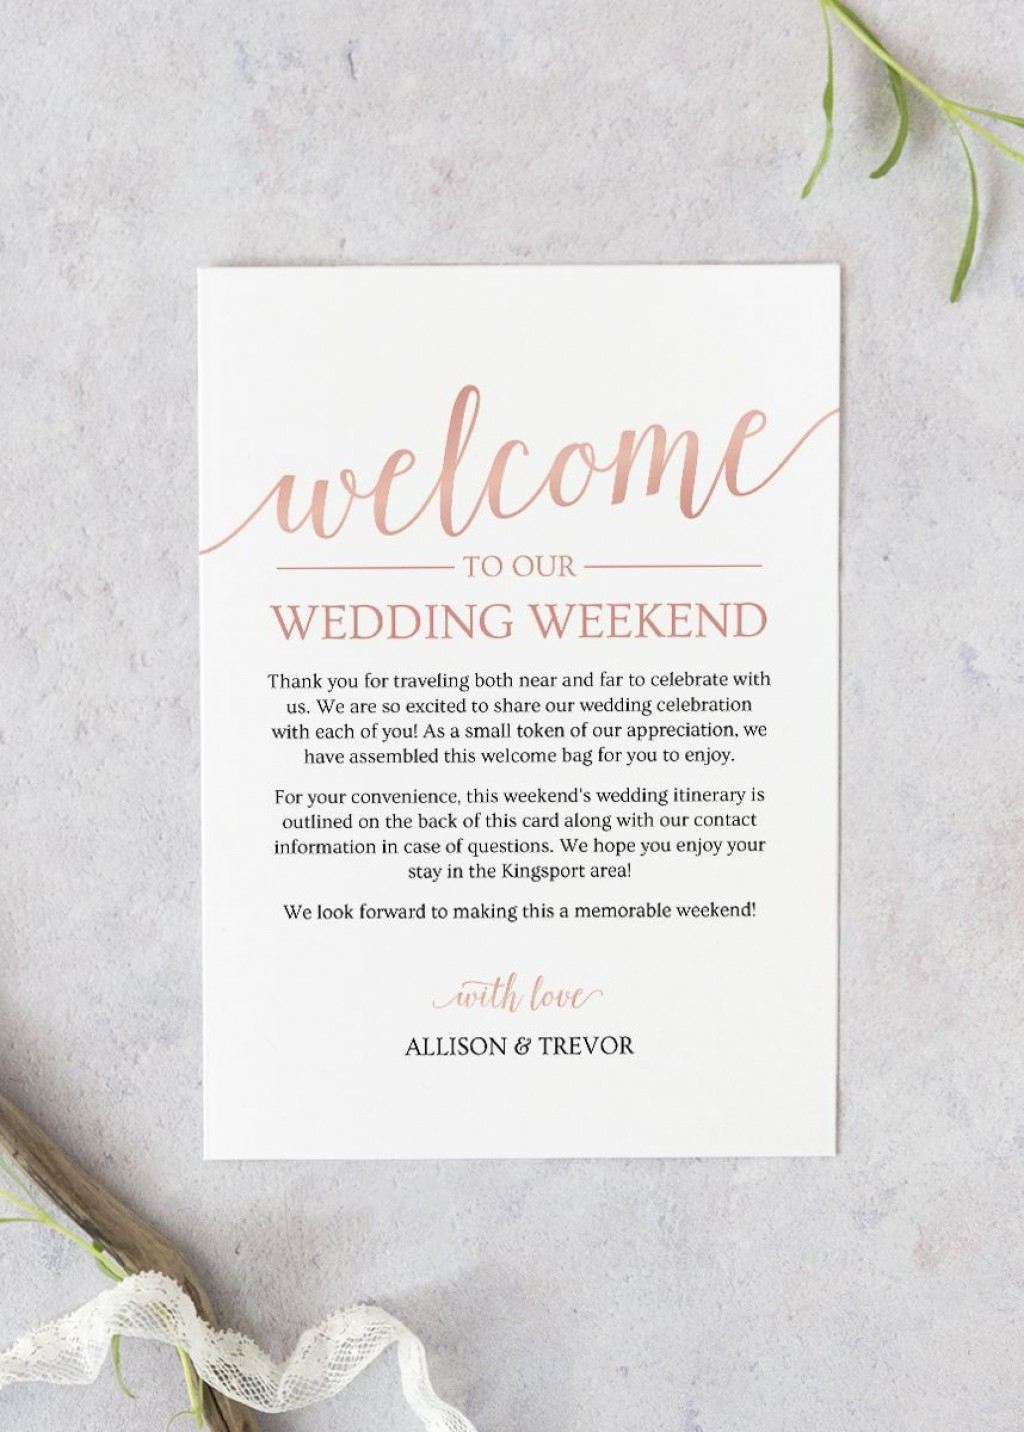 004 Wondrou Wedding Welcome Letter Template Download Concept Large